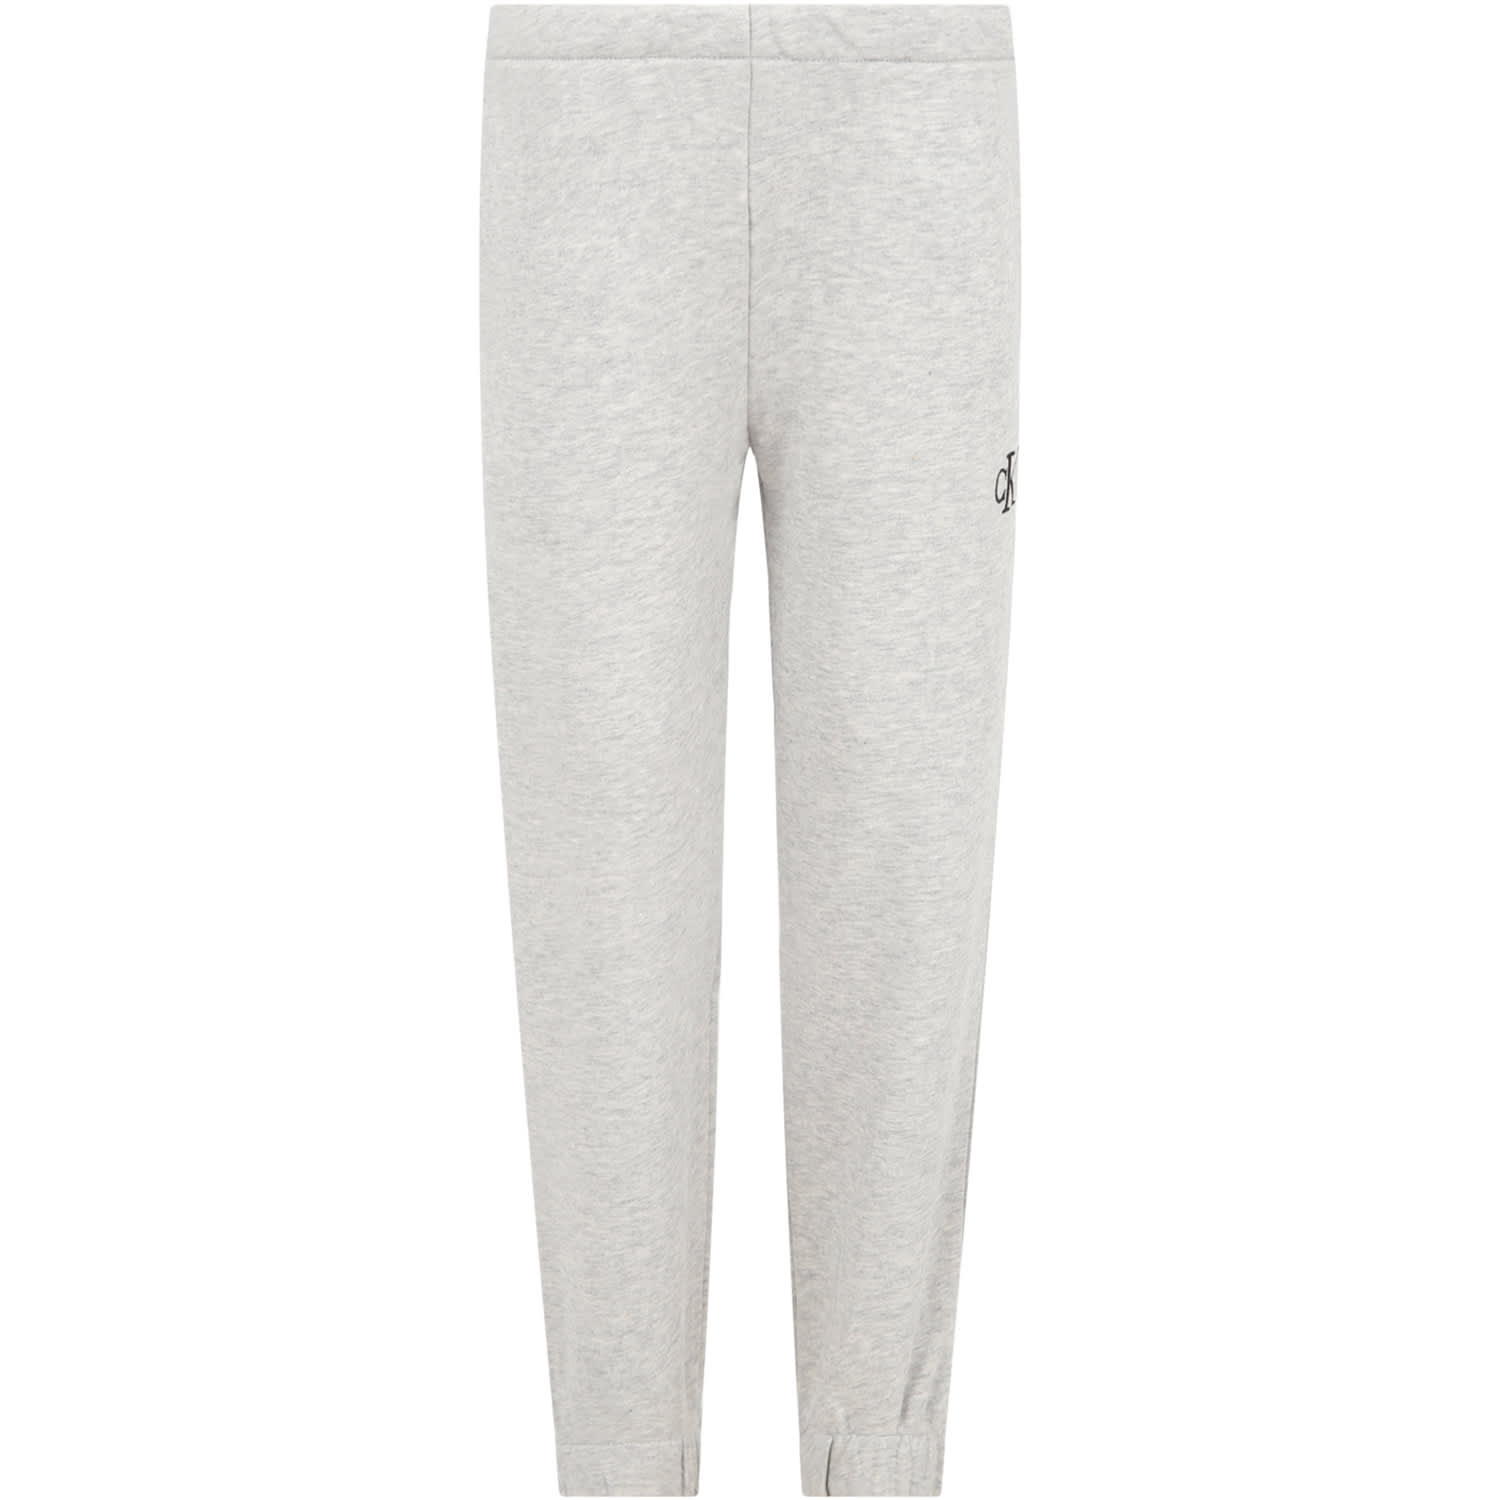 Calvin Klein GREY SWEATPANTS FOR GIRL WITH LOGO